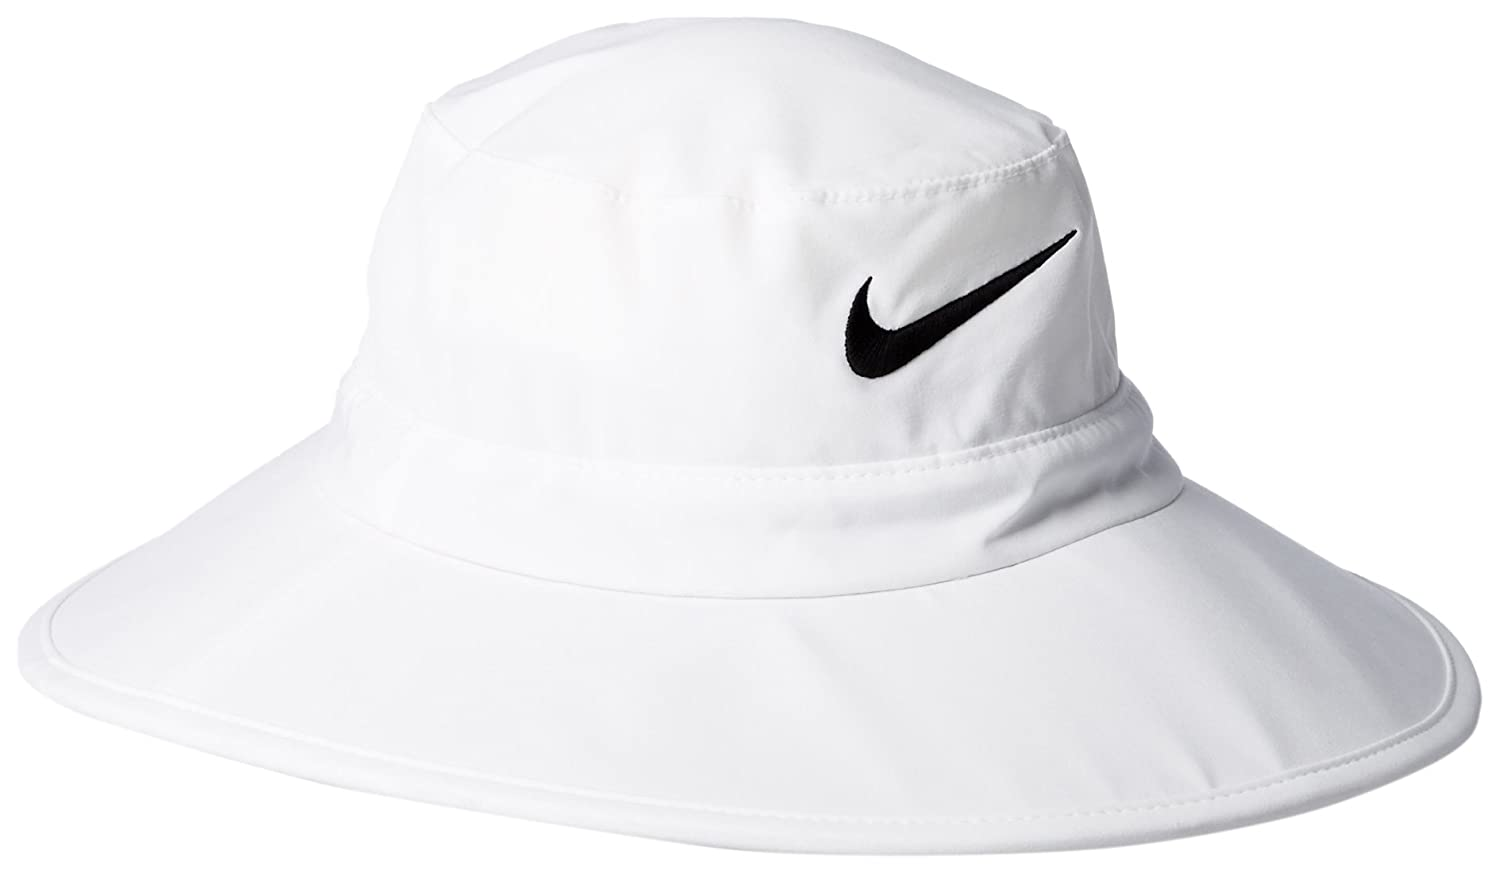 Nike Golf Sun Protect Bucket Hat White Black (Large X-Large)  Amazon.co.uk   Clothing d0a22d1ba1b8